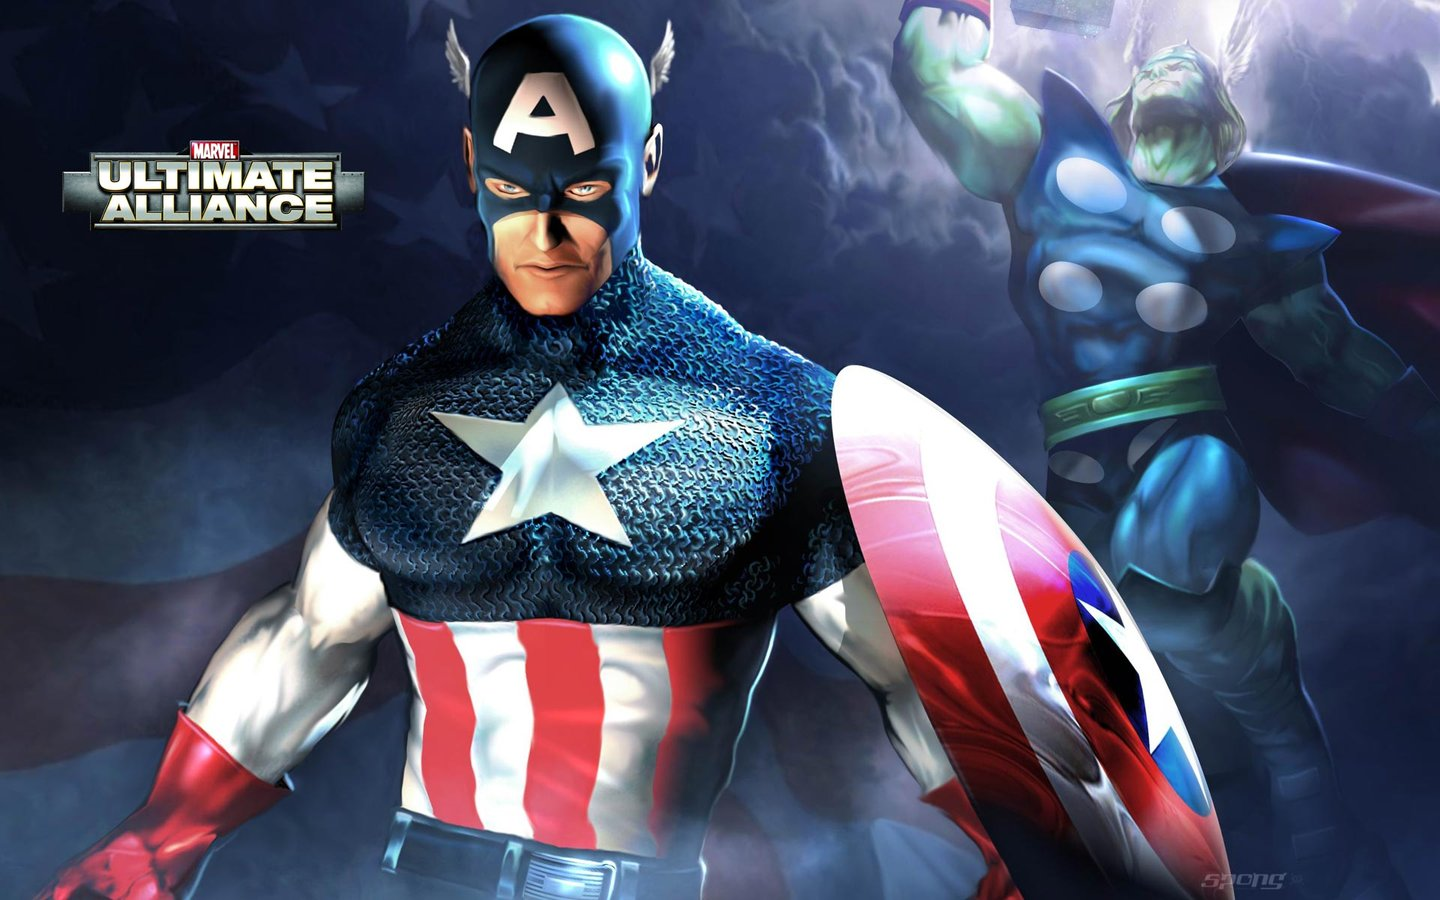 Wallpapers: Marvel: Ultimate Alliance - Xbox 360 (1 of 2)